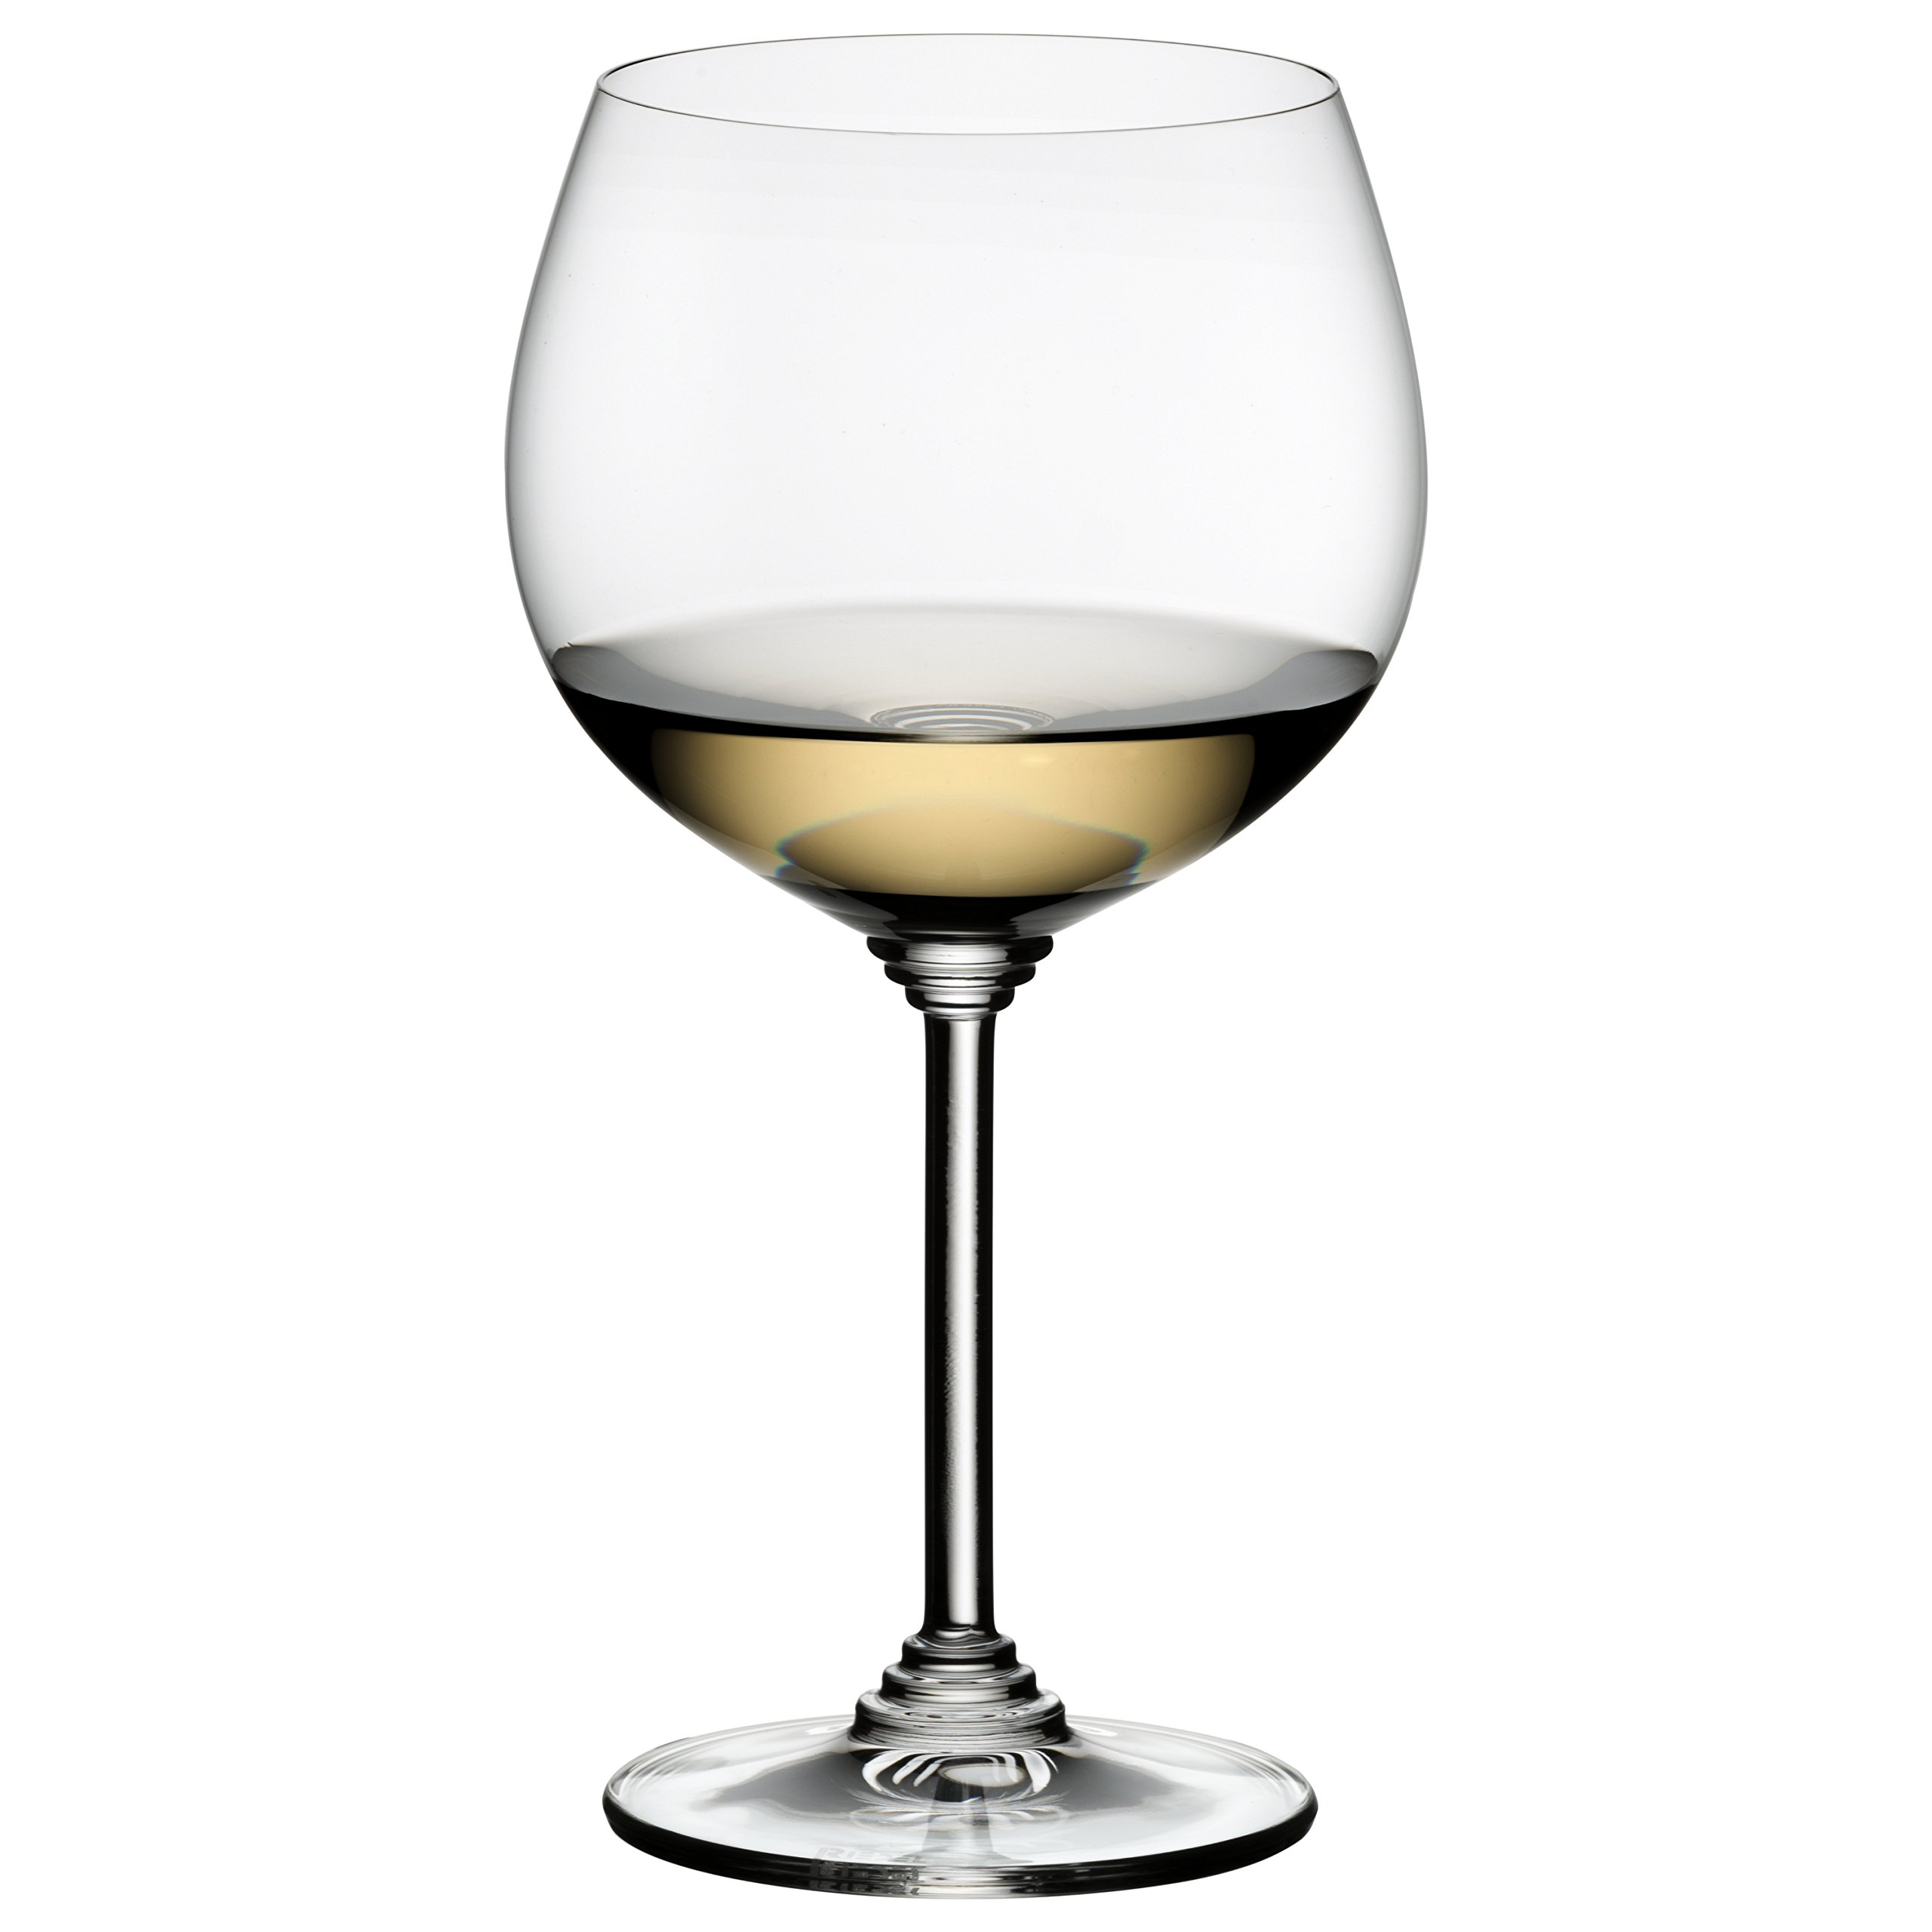 Riedel Wine Series Chardonnay Glass, Set of 2